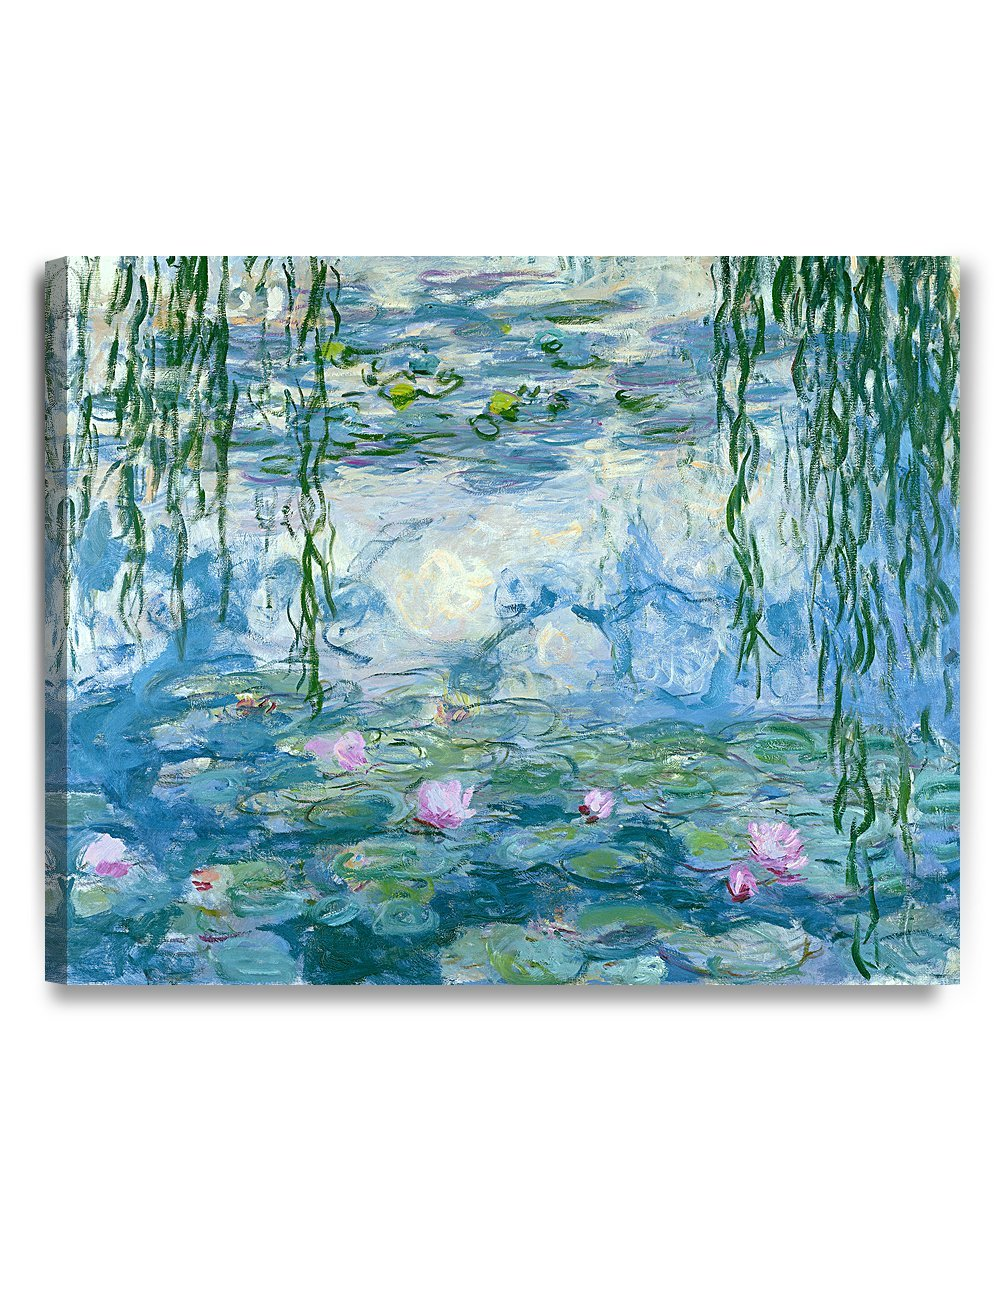 Water Lilies Claude Monet Art Reproduction Canvas Prints Wall Art for Home Decor Drop shipping